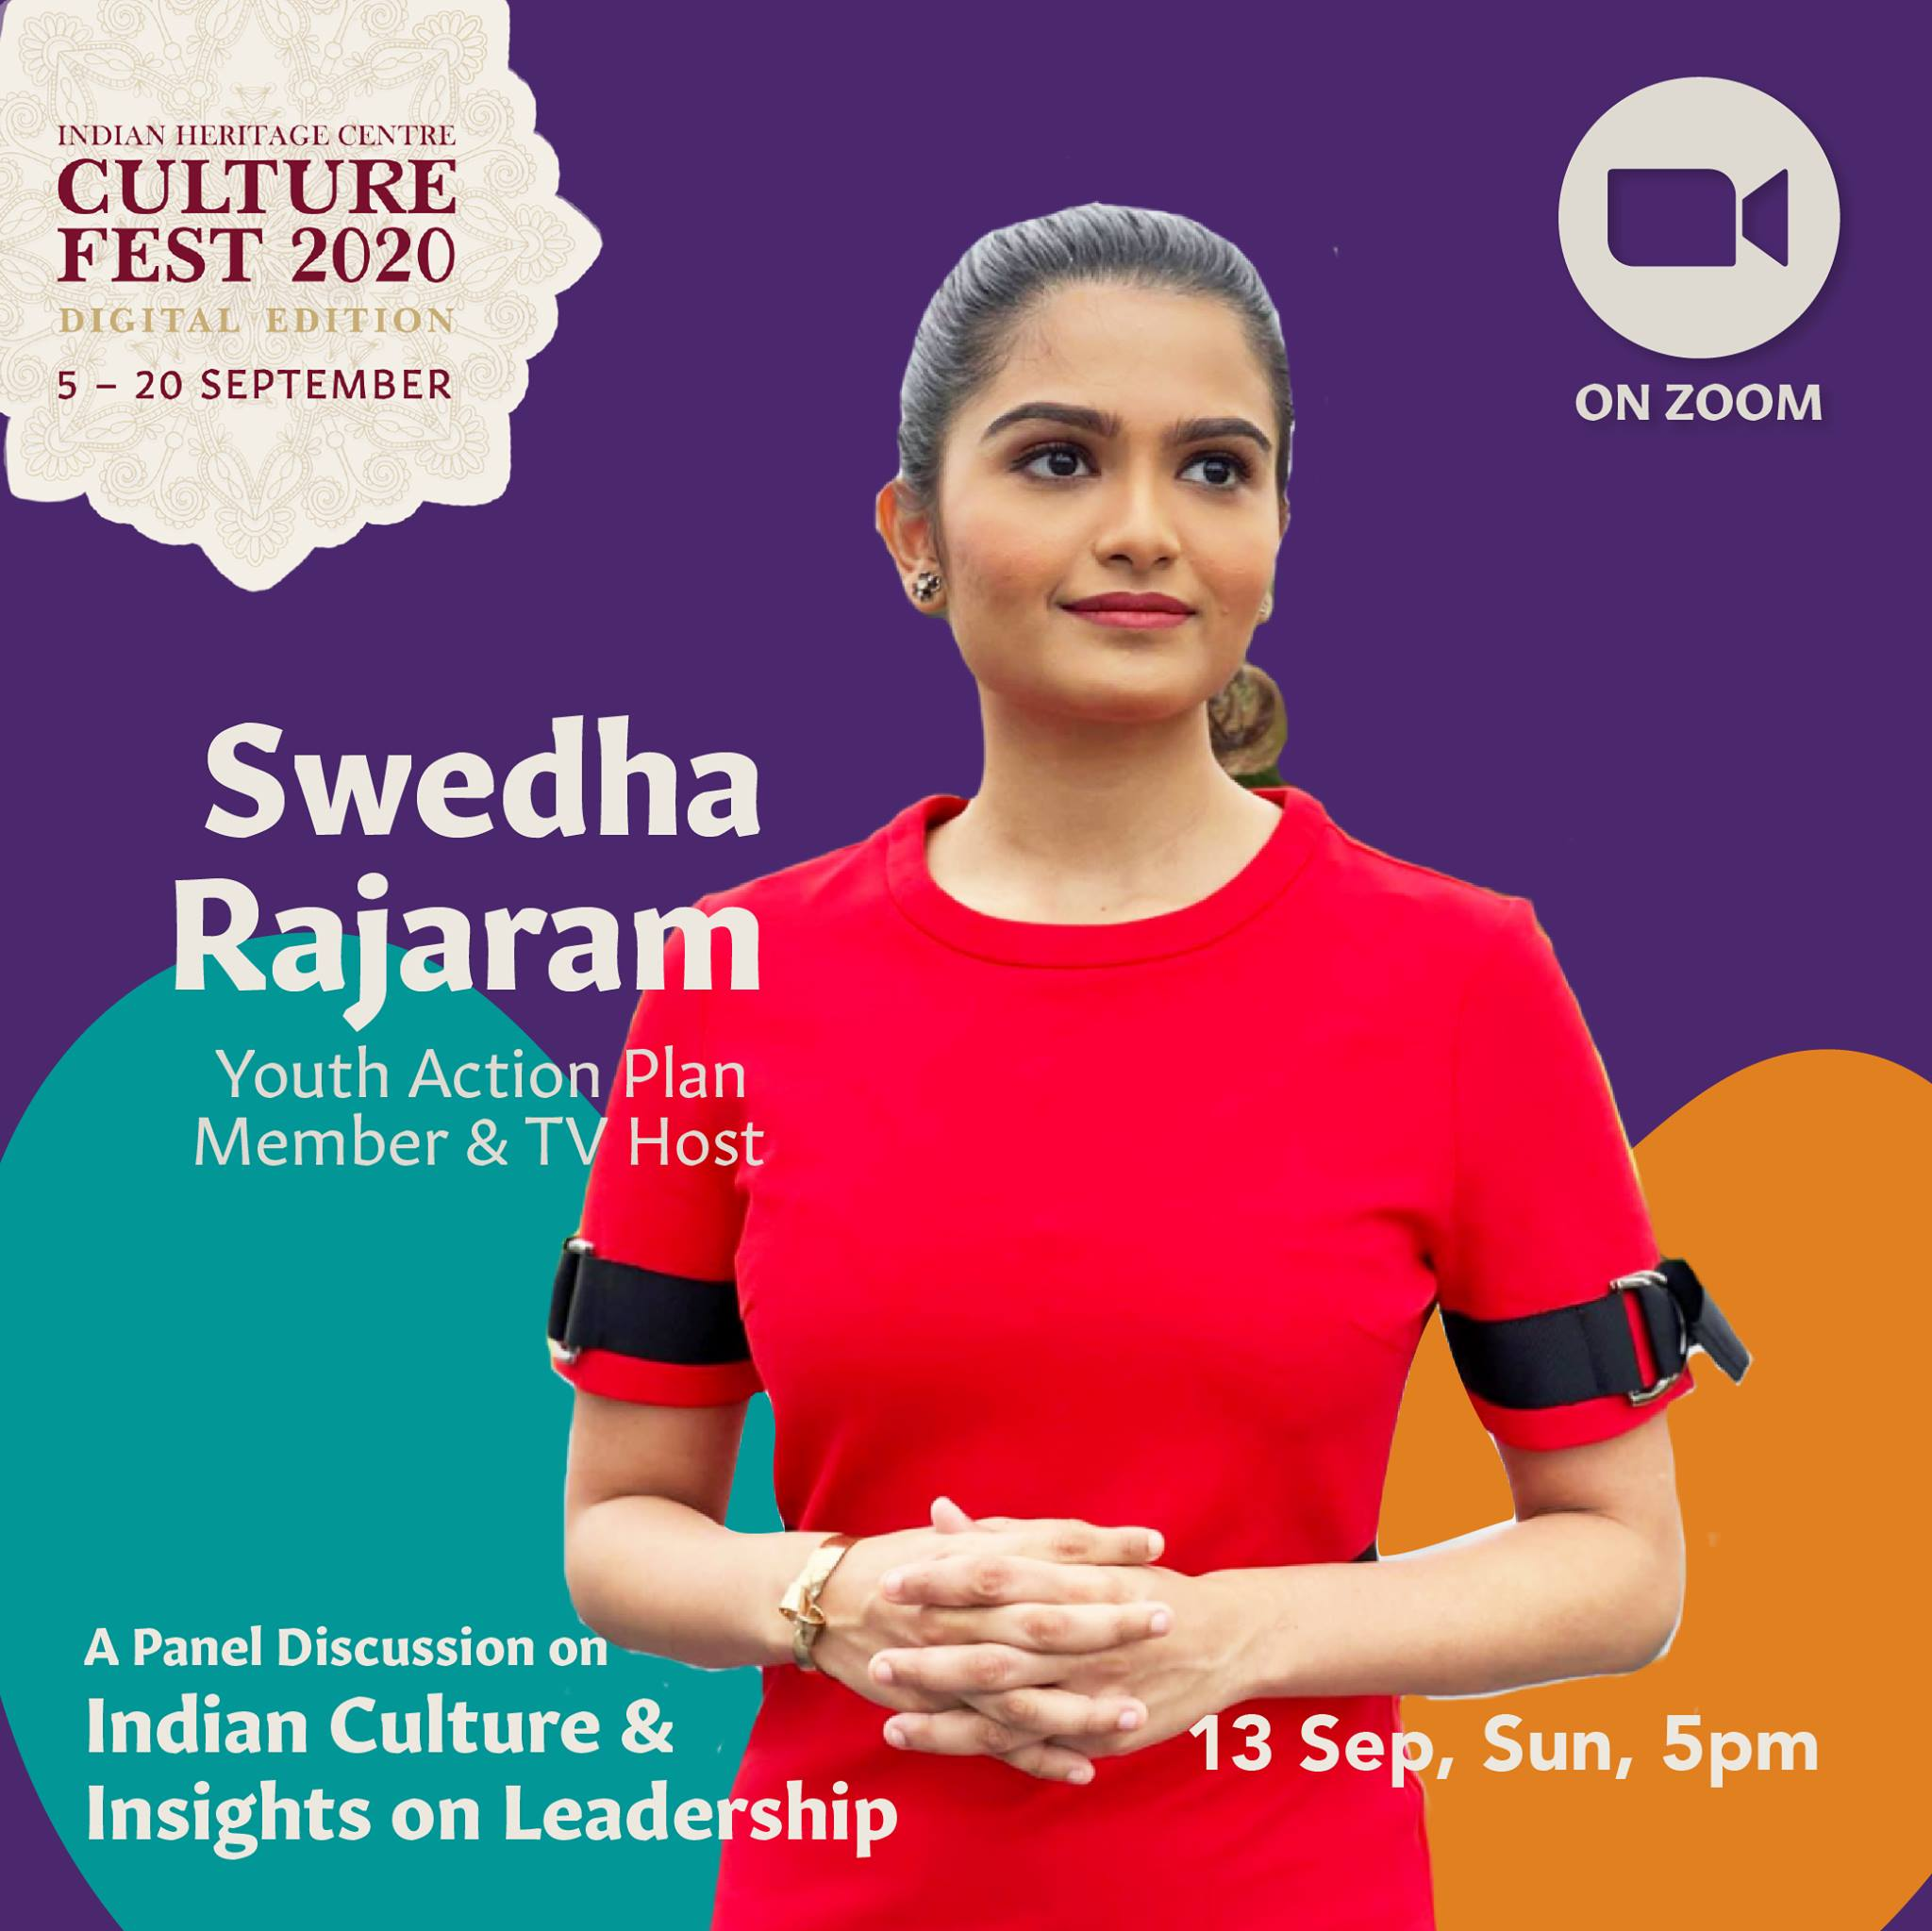 Swedha Rajaram - youngest member of SG Youth Action Panel, Chief Network Officer of Advisory Singapore and member of mental health collective Your Head Lah!. Photo Courtesy: IHC